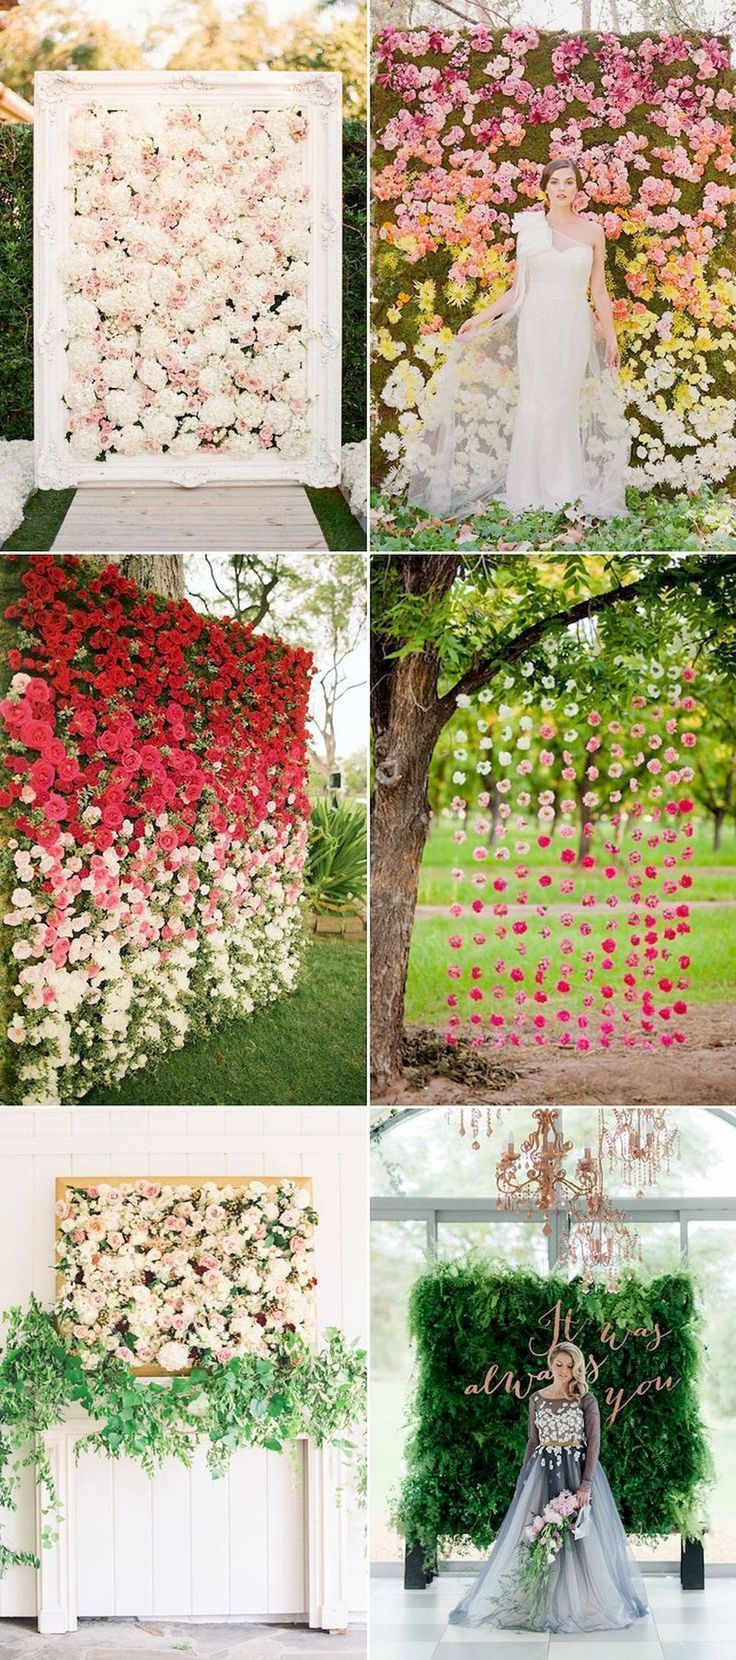 Gorgeous 36 Amazing Fall Outdoor Wedding Ideas on a Budget https://bitecloth.com/2017/06/23/36-amazing-fall-outdoor-wedding-ideas-budget/ #budgetwedding #budgetweddingideas #outdoorweddingideas